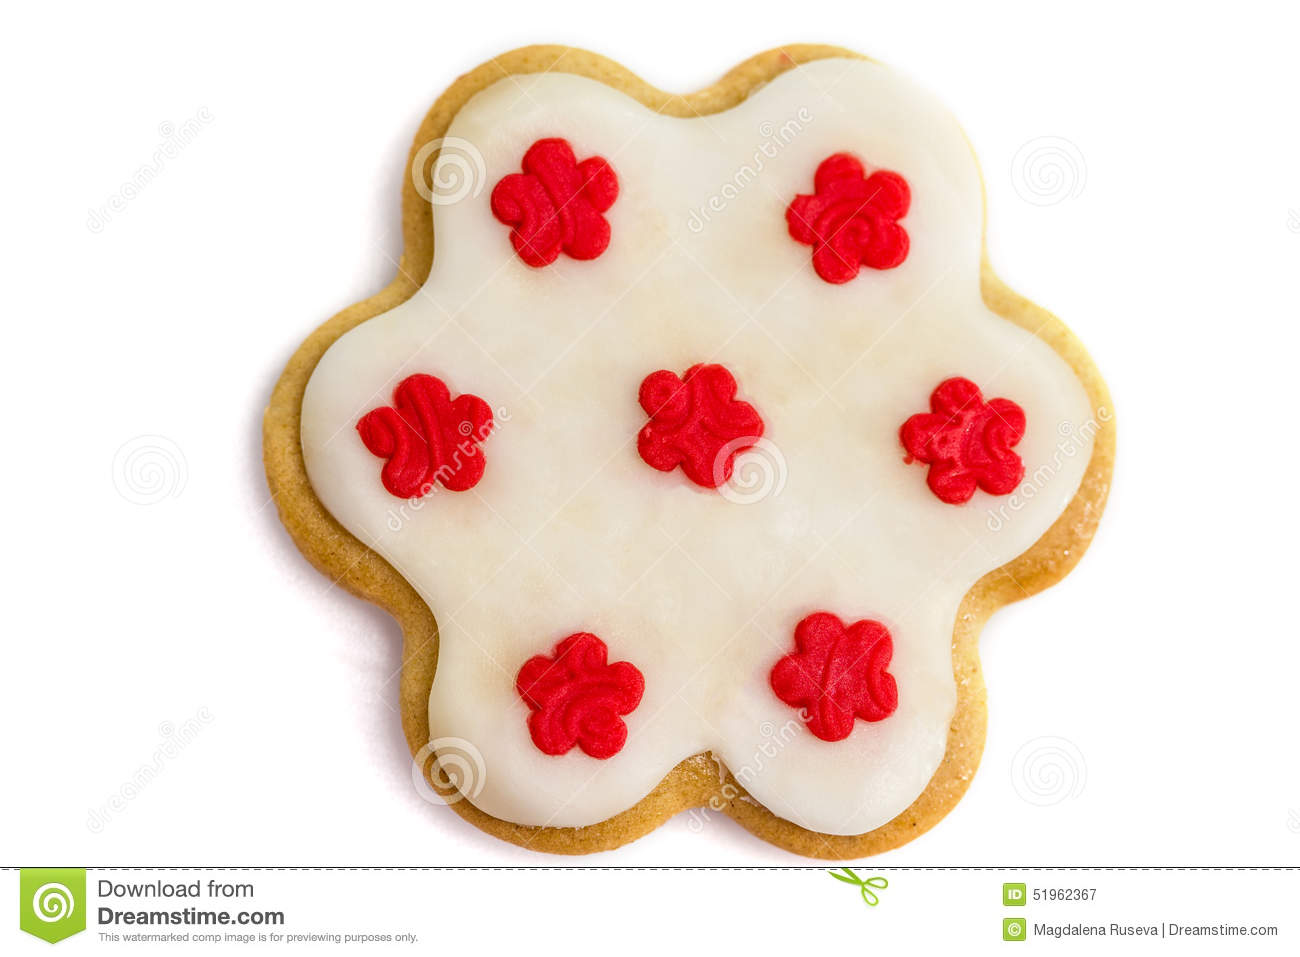 Gingerbread Cookies With Royal Icing Stock Photo - Image: 51962367